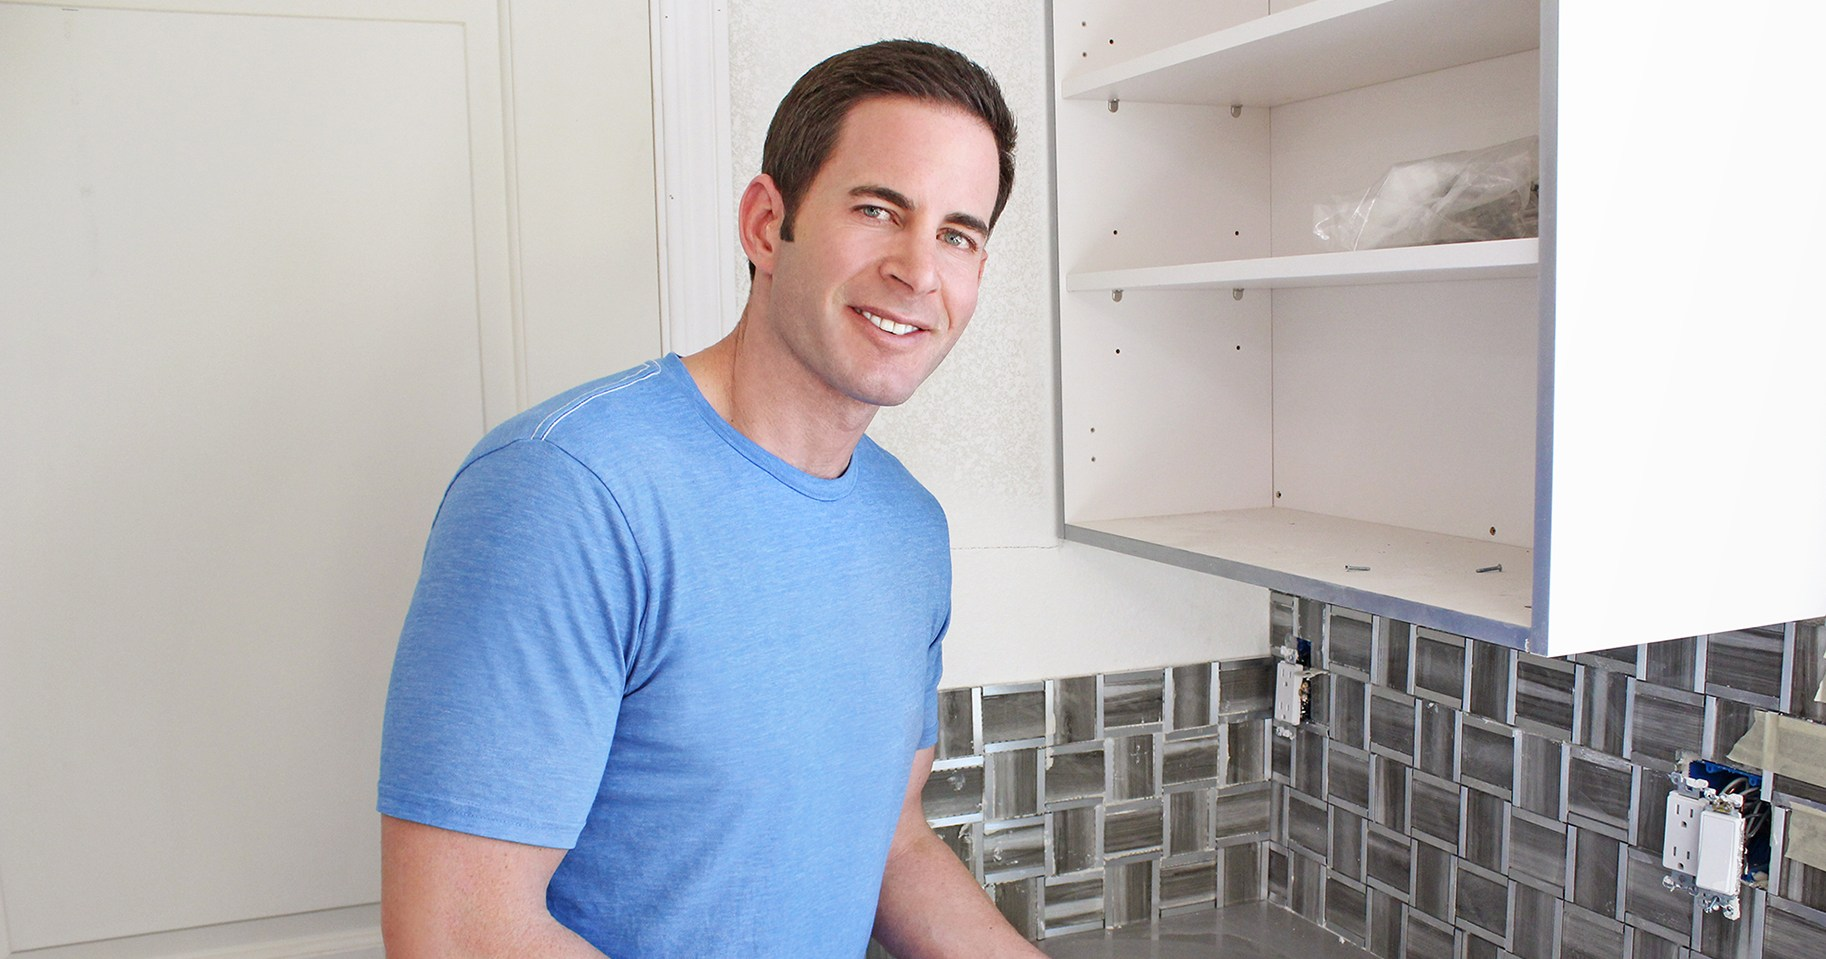 Tarek El Moussa to Star in Series Following New Life as Single Dad